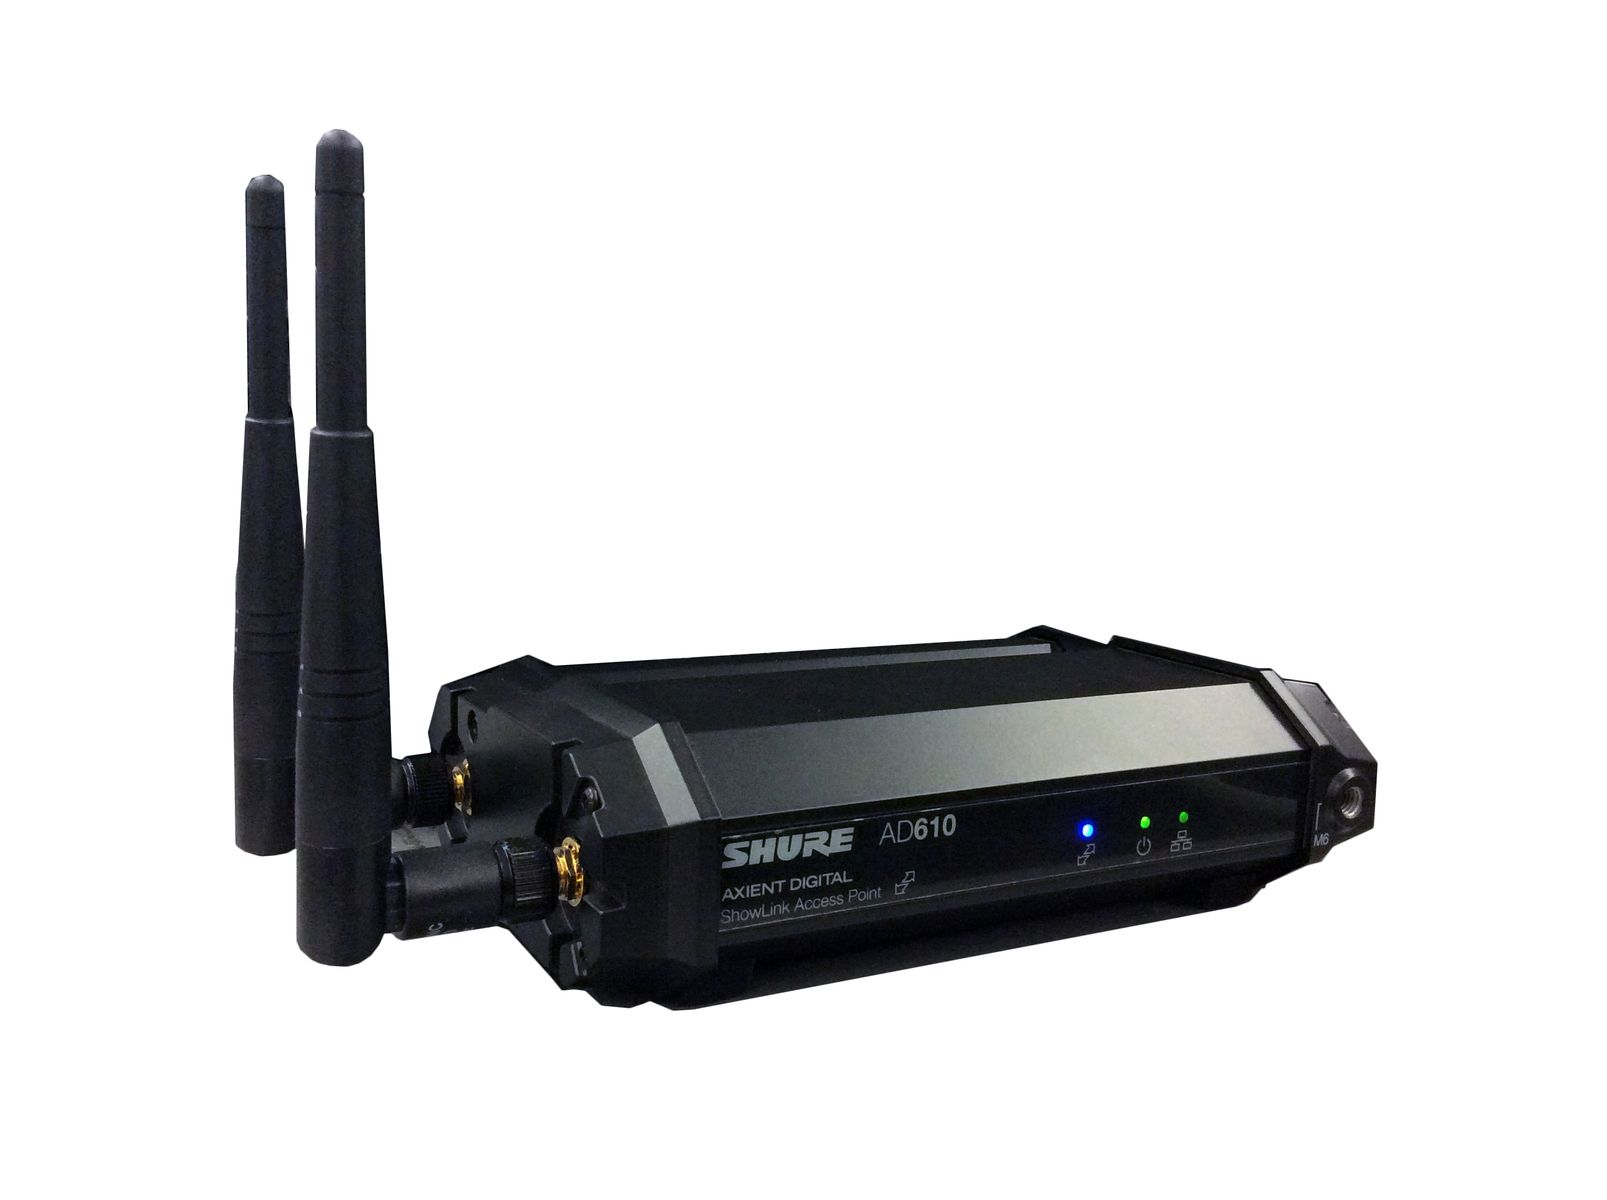 Shure Axient Digital AD610 ShowLink Access Point is available for rental at Hollywood Sound Systems.